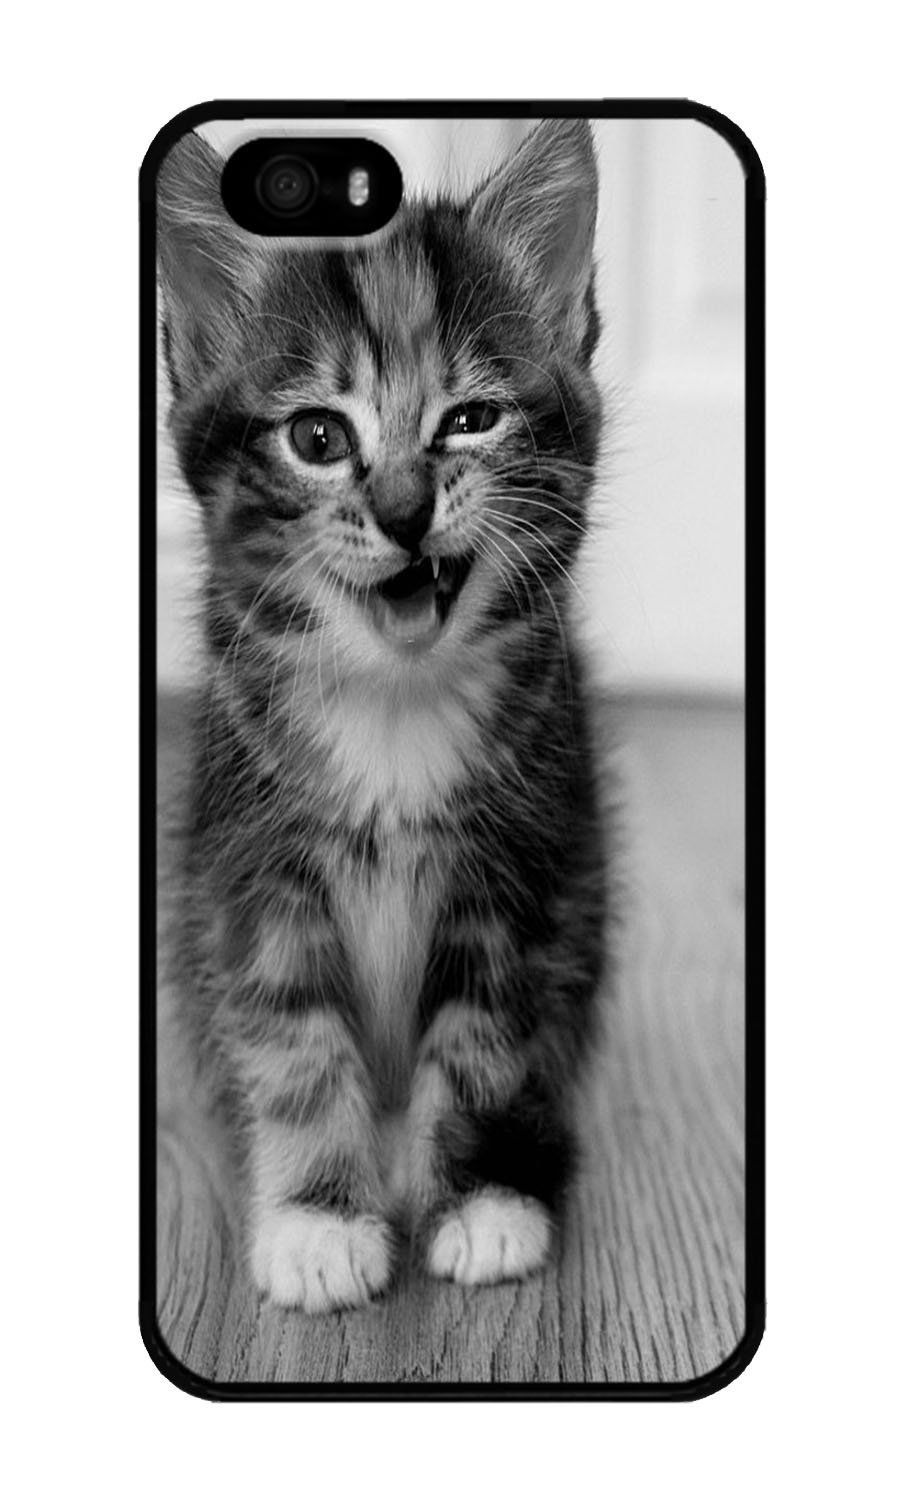 Amazon Com Iphone 5 5s Case Dayimm Cute Funny Kitten Kitty Cat Black Pc Hard Case For Apple Iphone 5 5s Electronics Cute Animals Cute Cats Kittens Funny